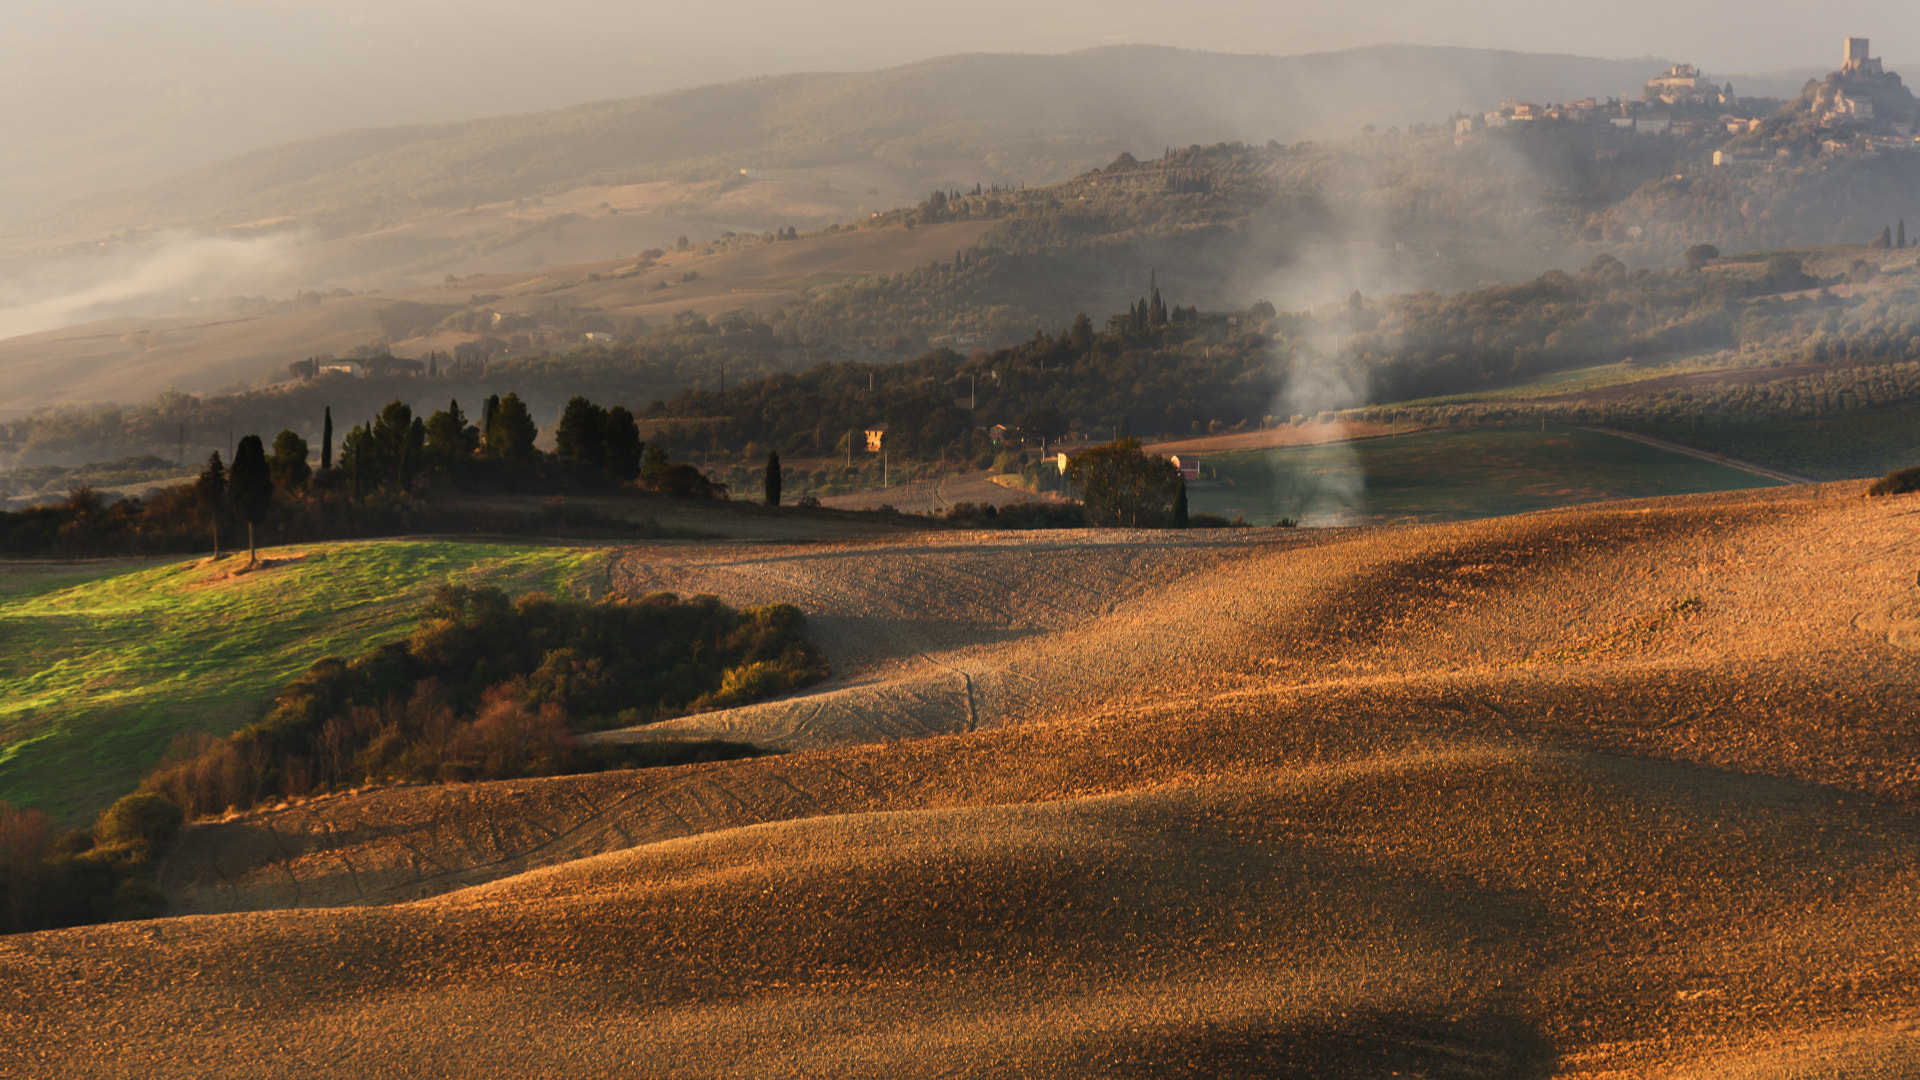 Photograph San quirico d'Orcia: surroundings by Leonardo Acquisti on 500px